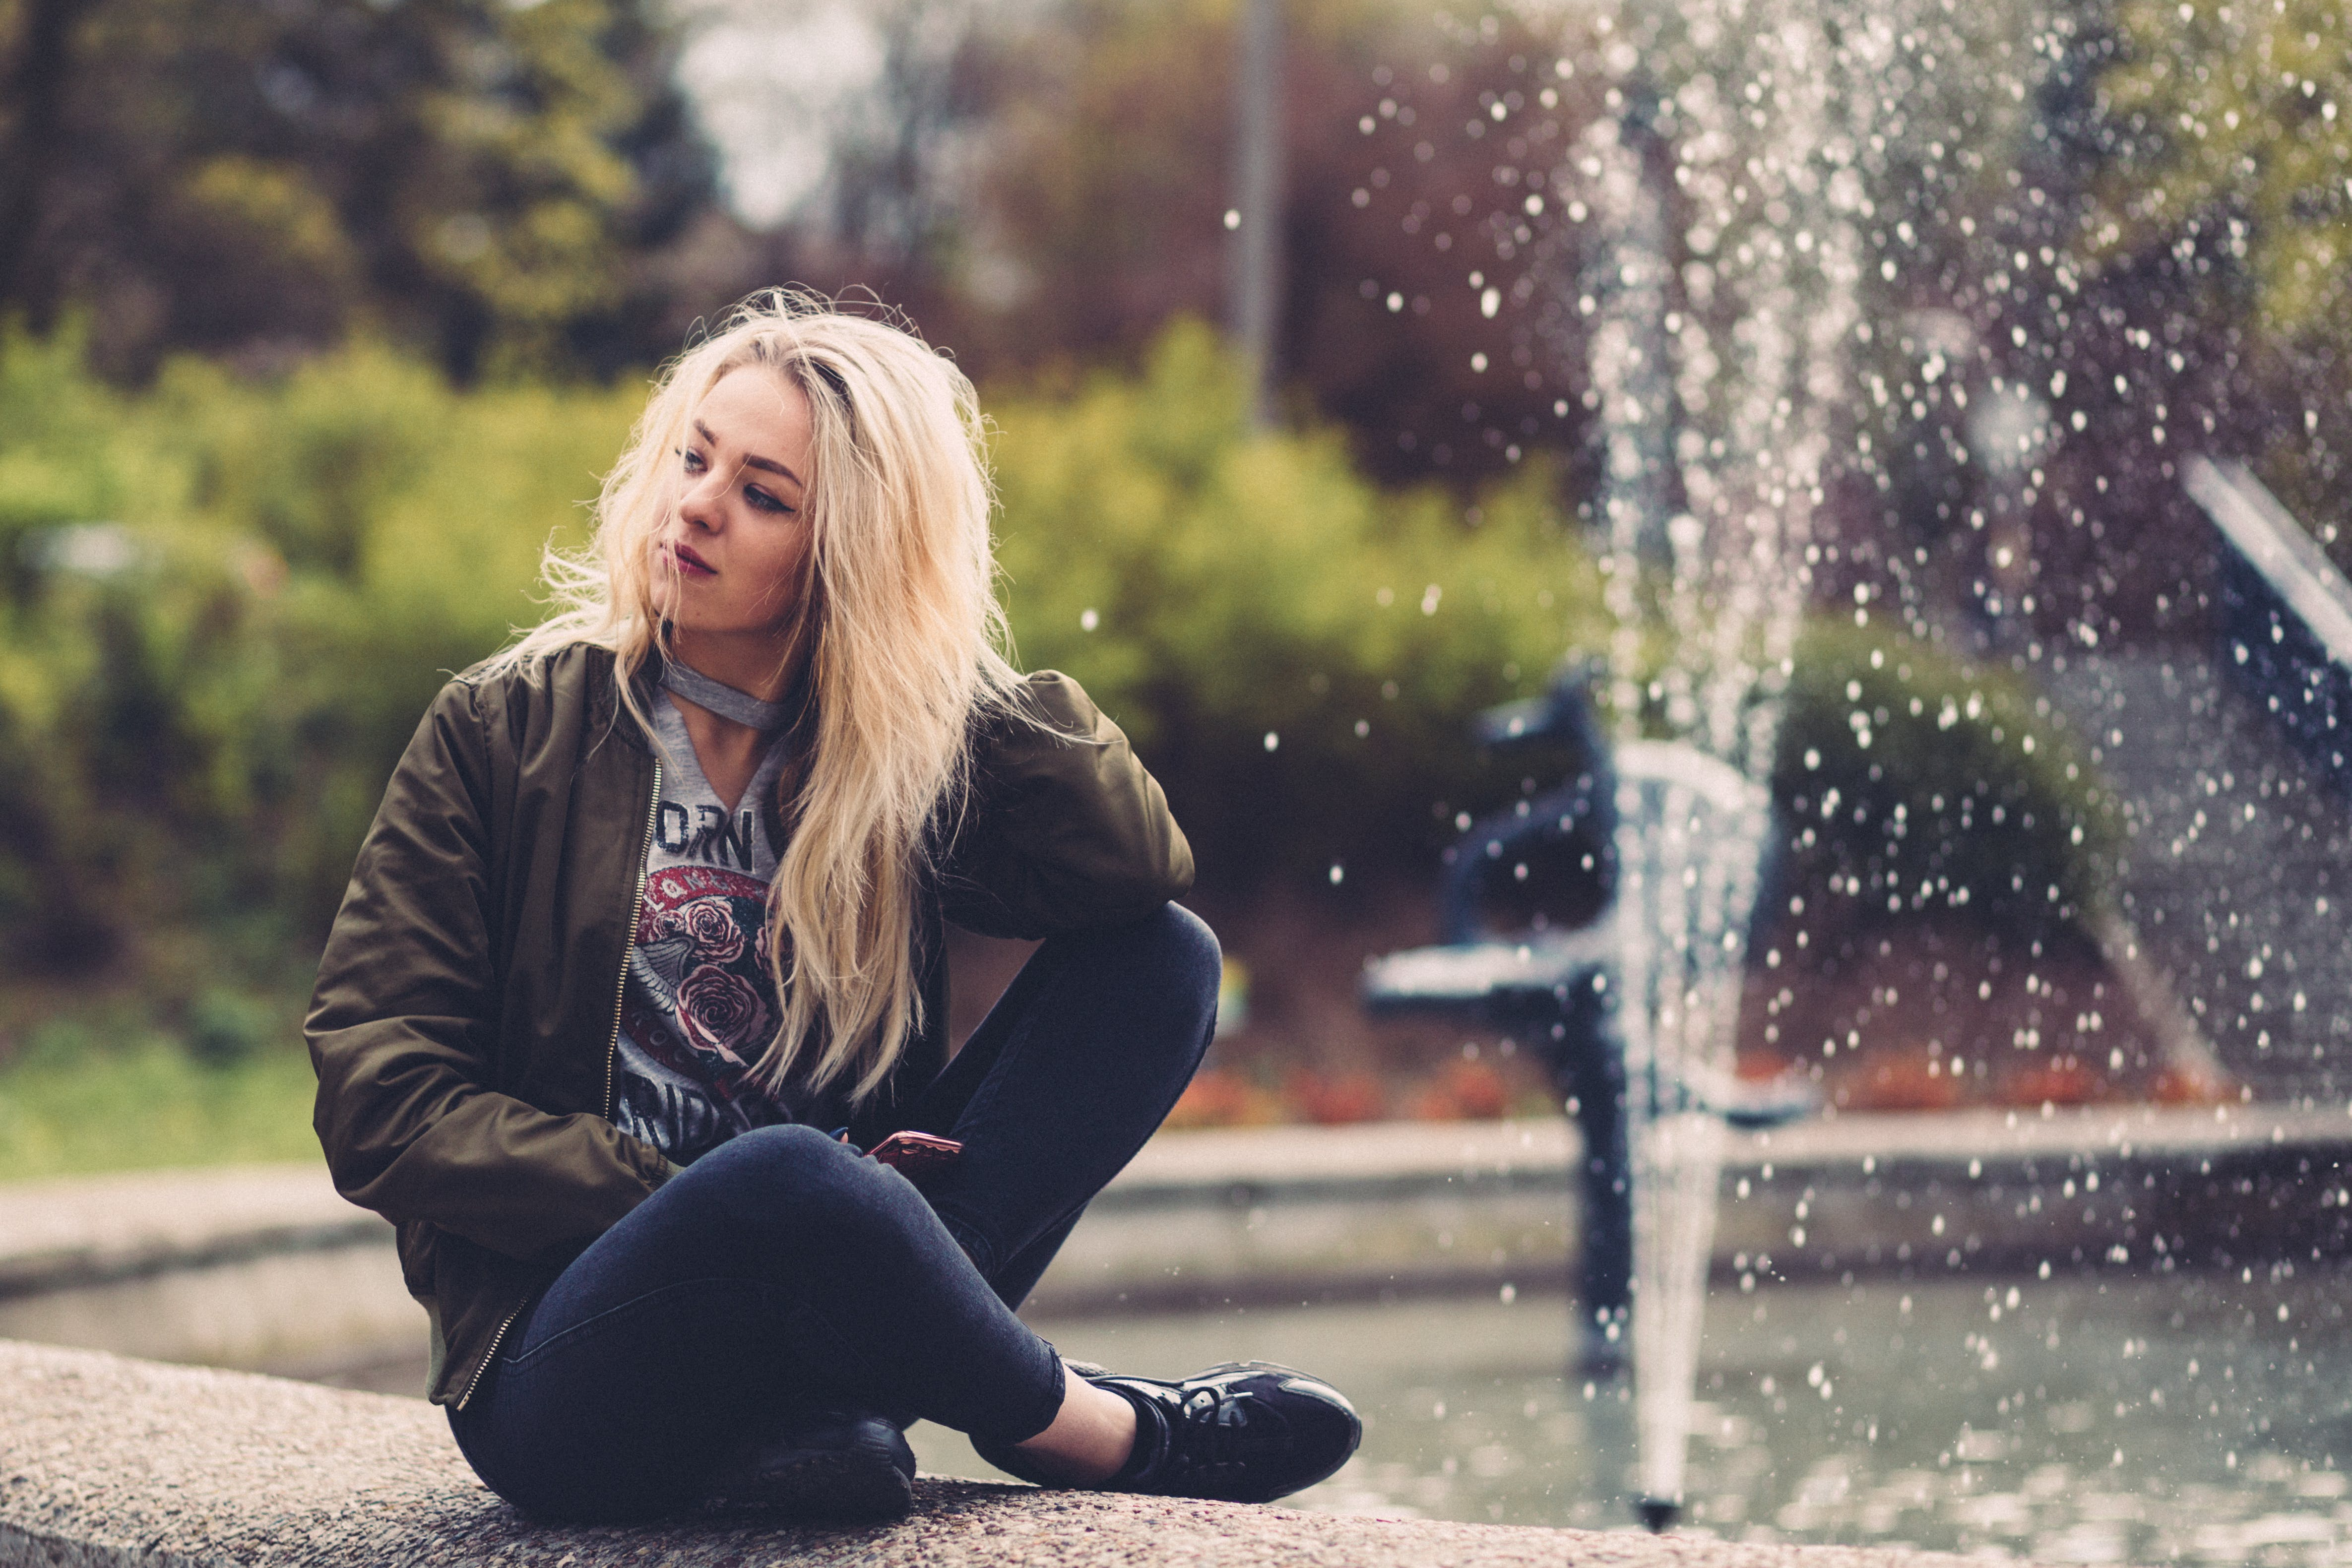 Free stock photo of fashion, person, woman, water